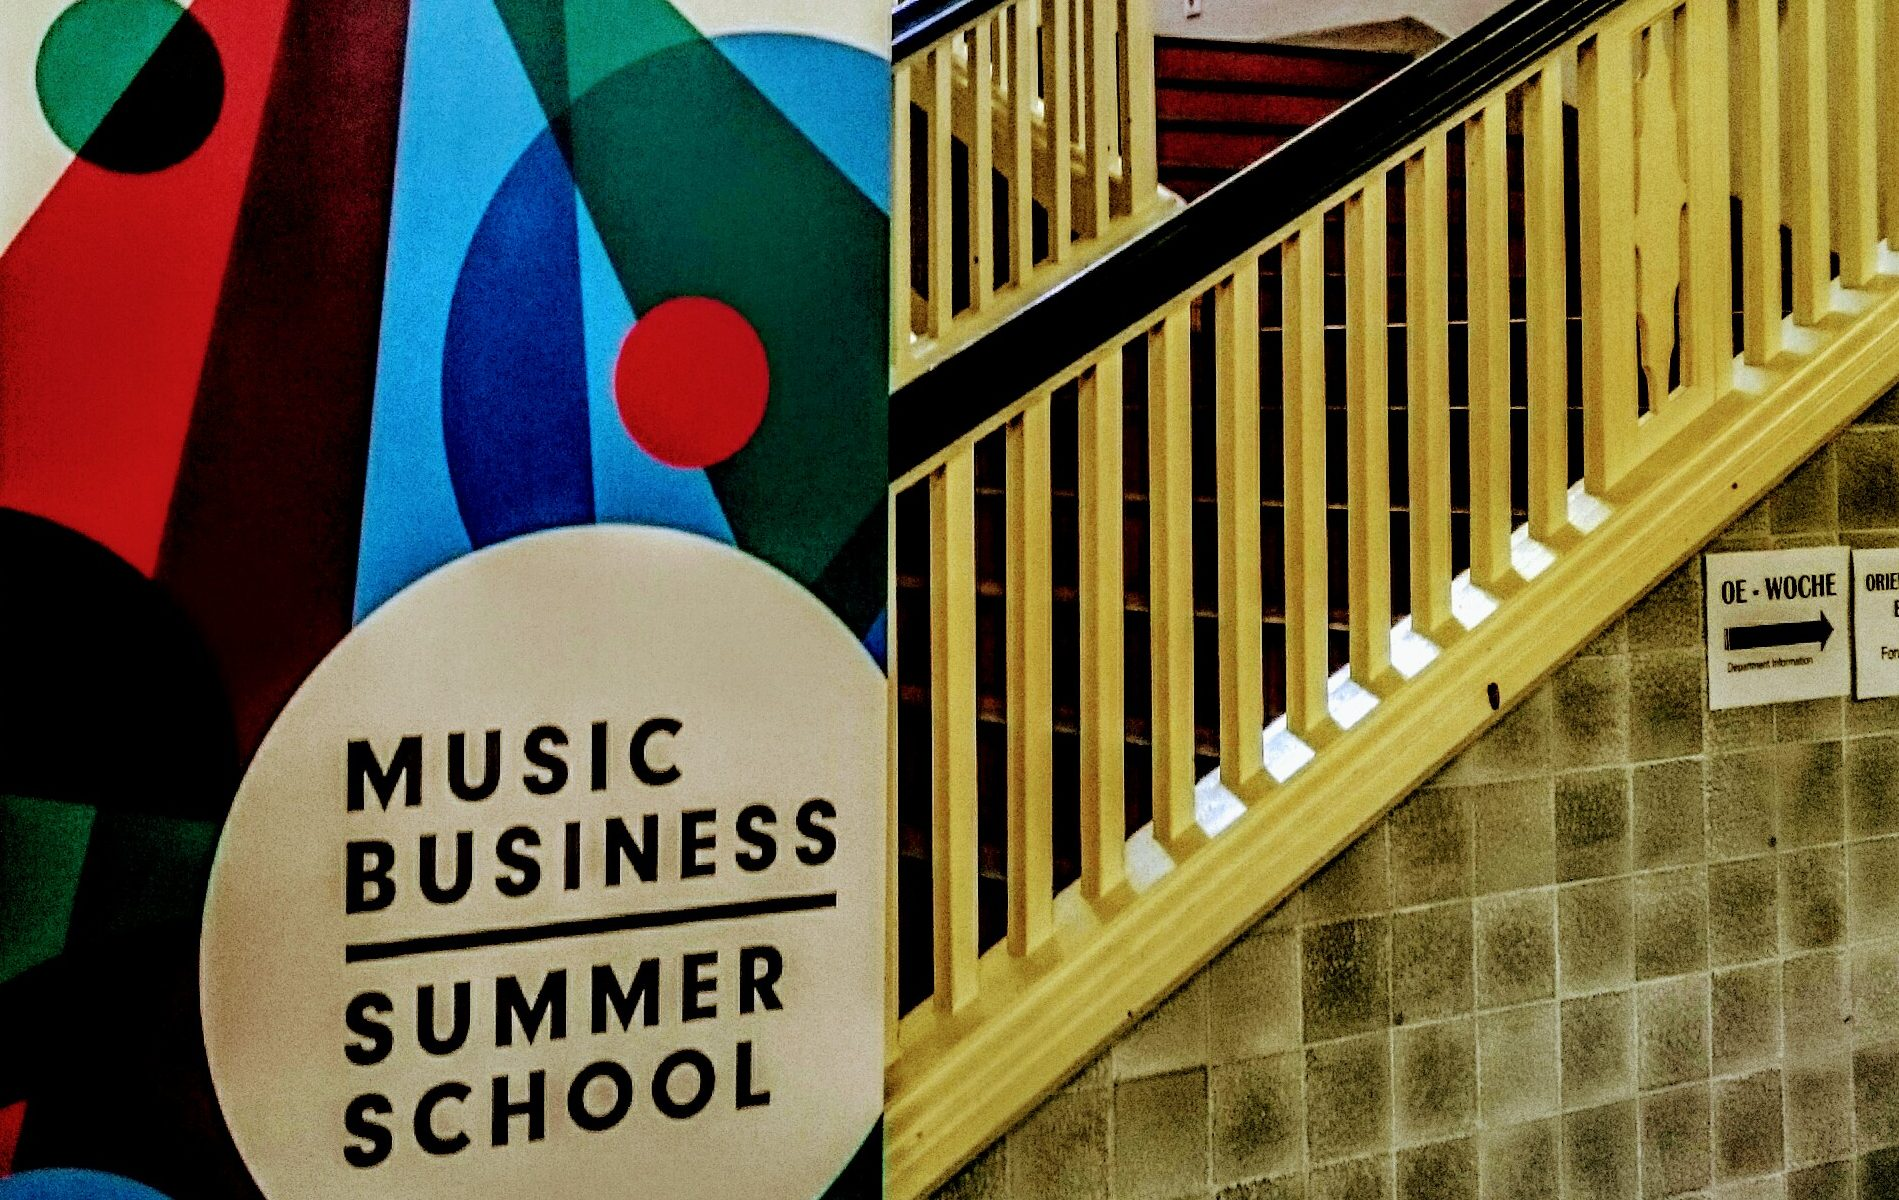 Music Business Summer School, IHM, Hamburg Media School, Pop, Business, Workshop, Learning, Poster, Design, CI